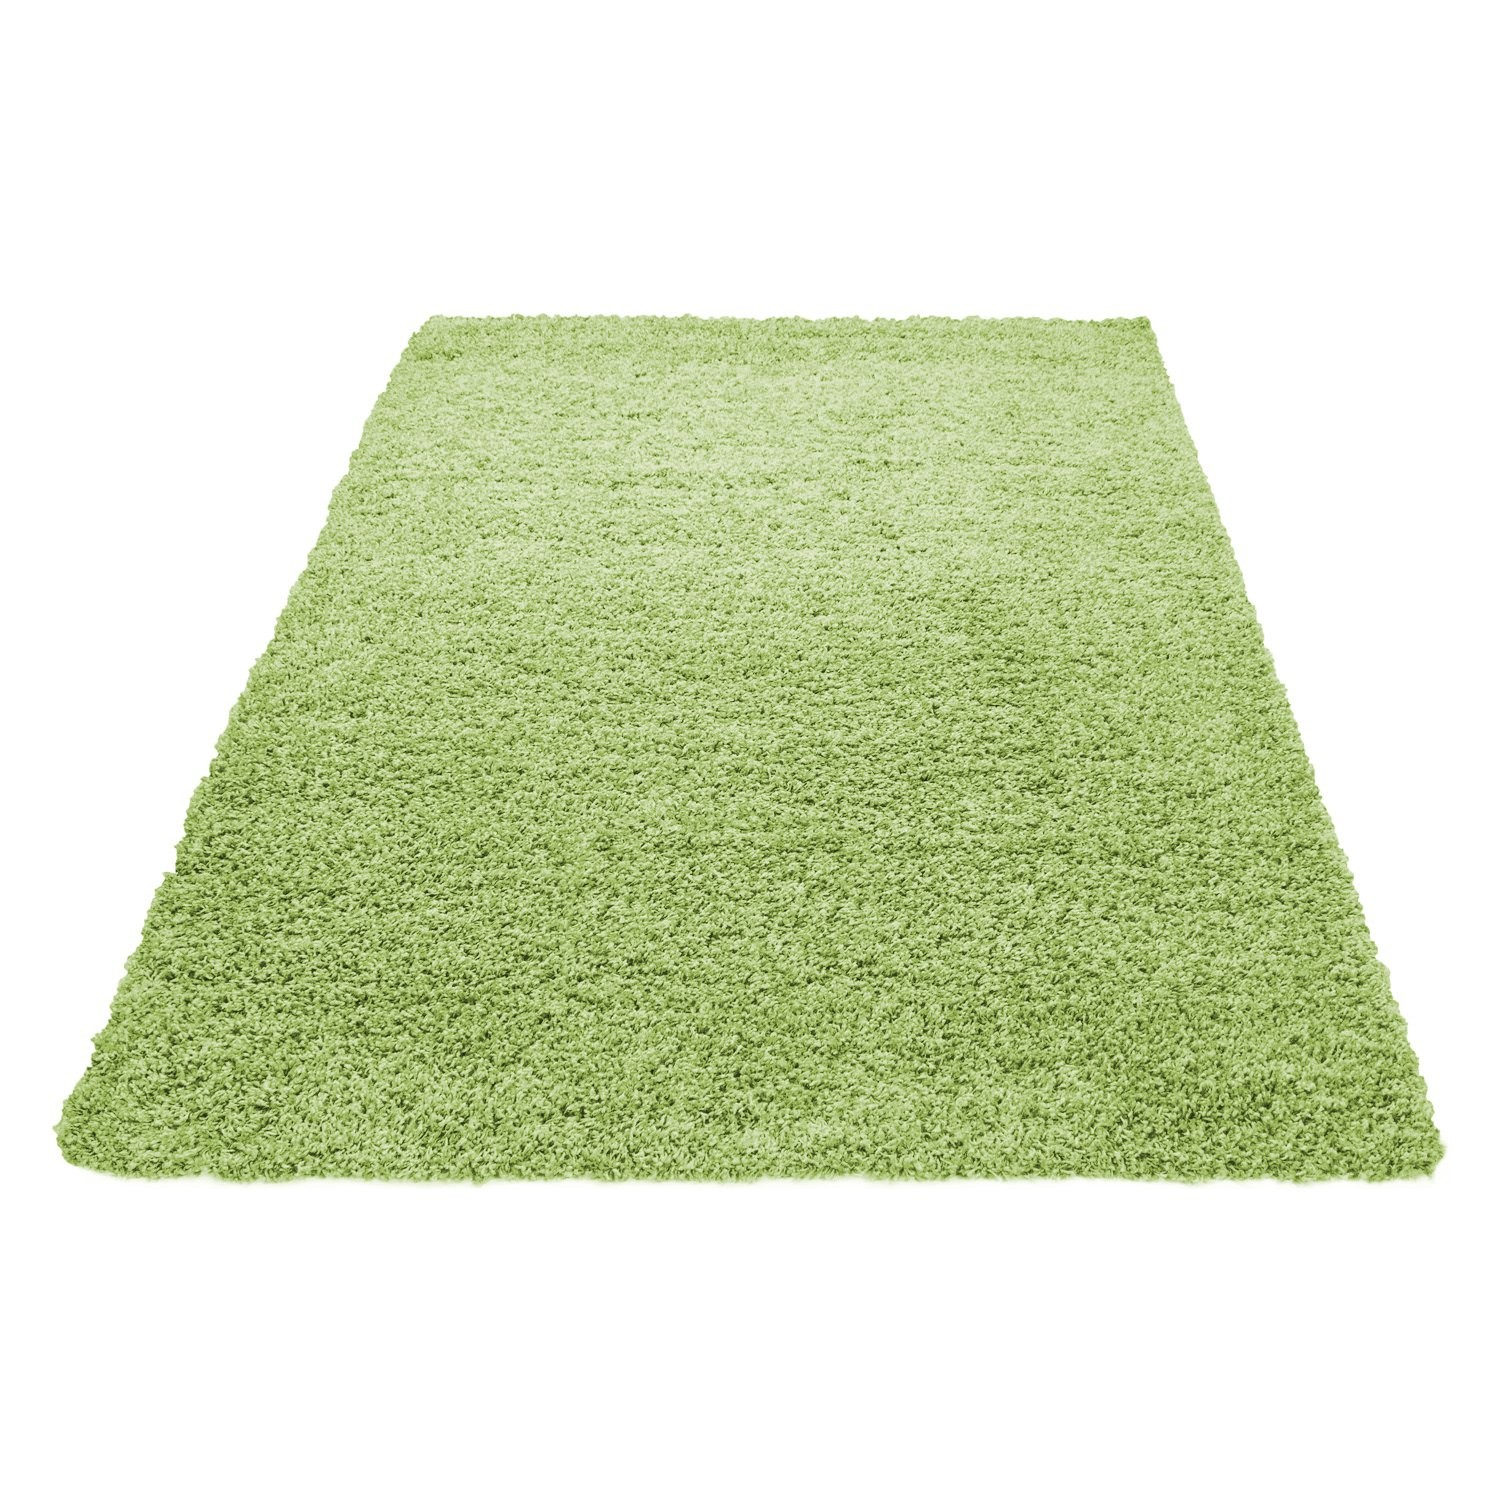 tapis shaggy vert moderne tapis design uni en. Black Bedroom Furniture Sets. Home Design Ideas